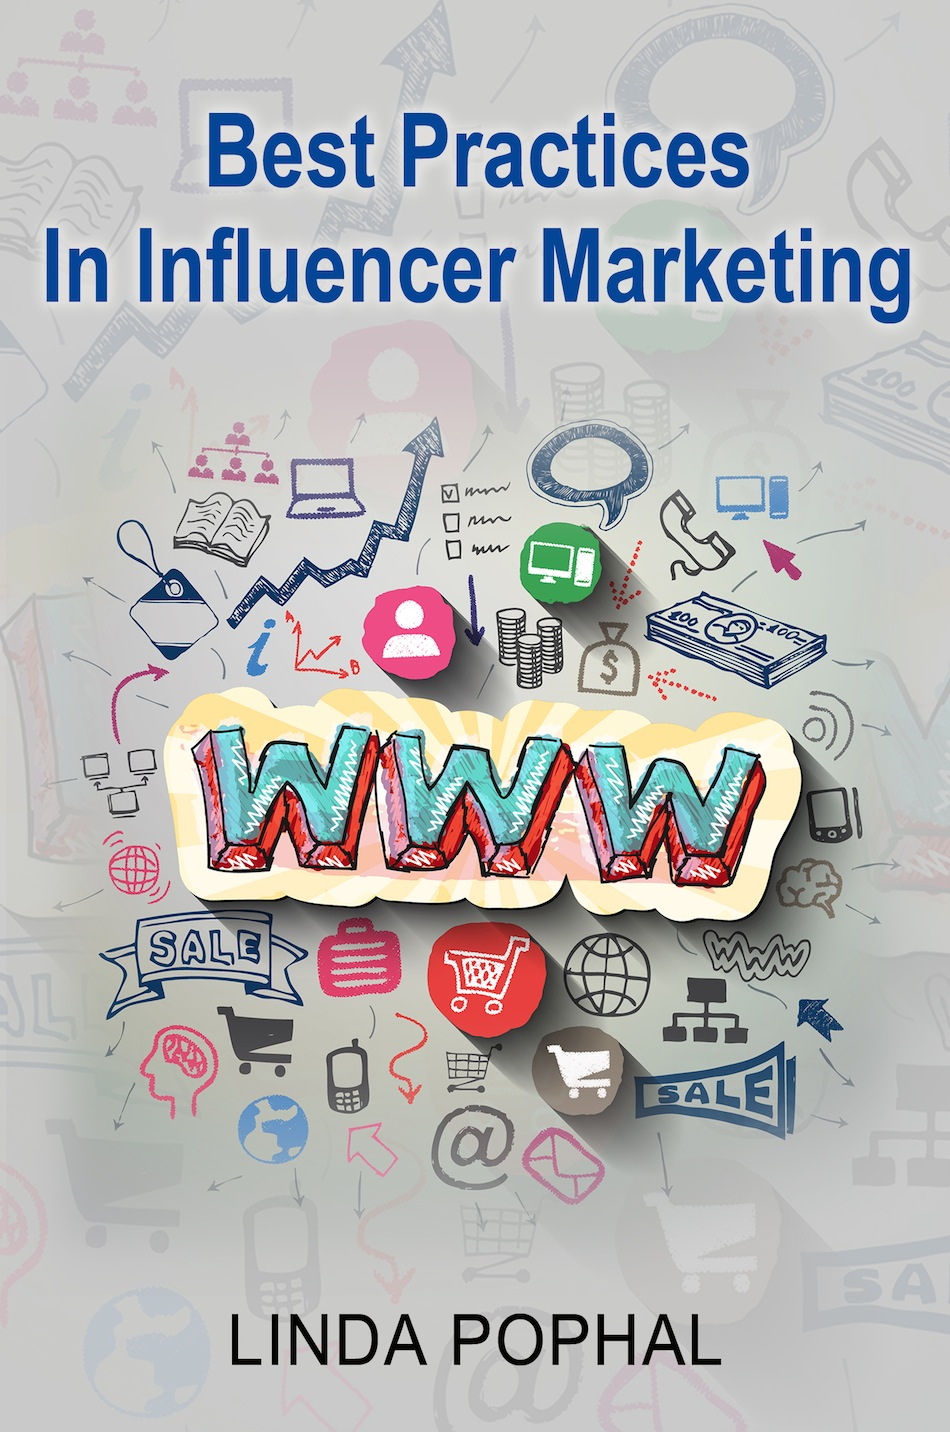 Best Practices in Influencer Marketing: Insights from Digital Marketing Experts